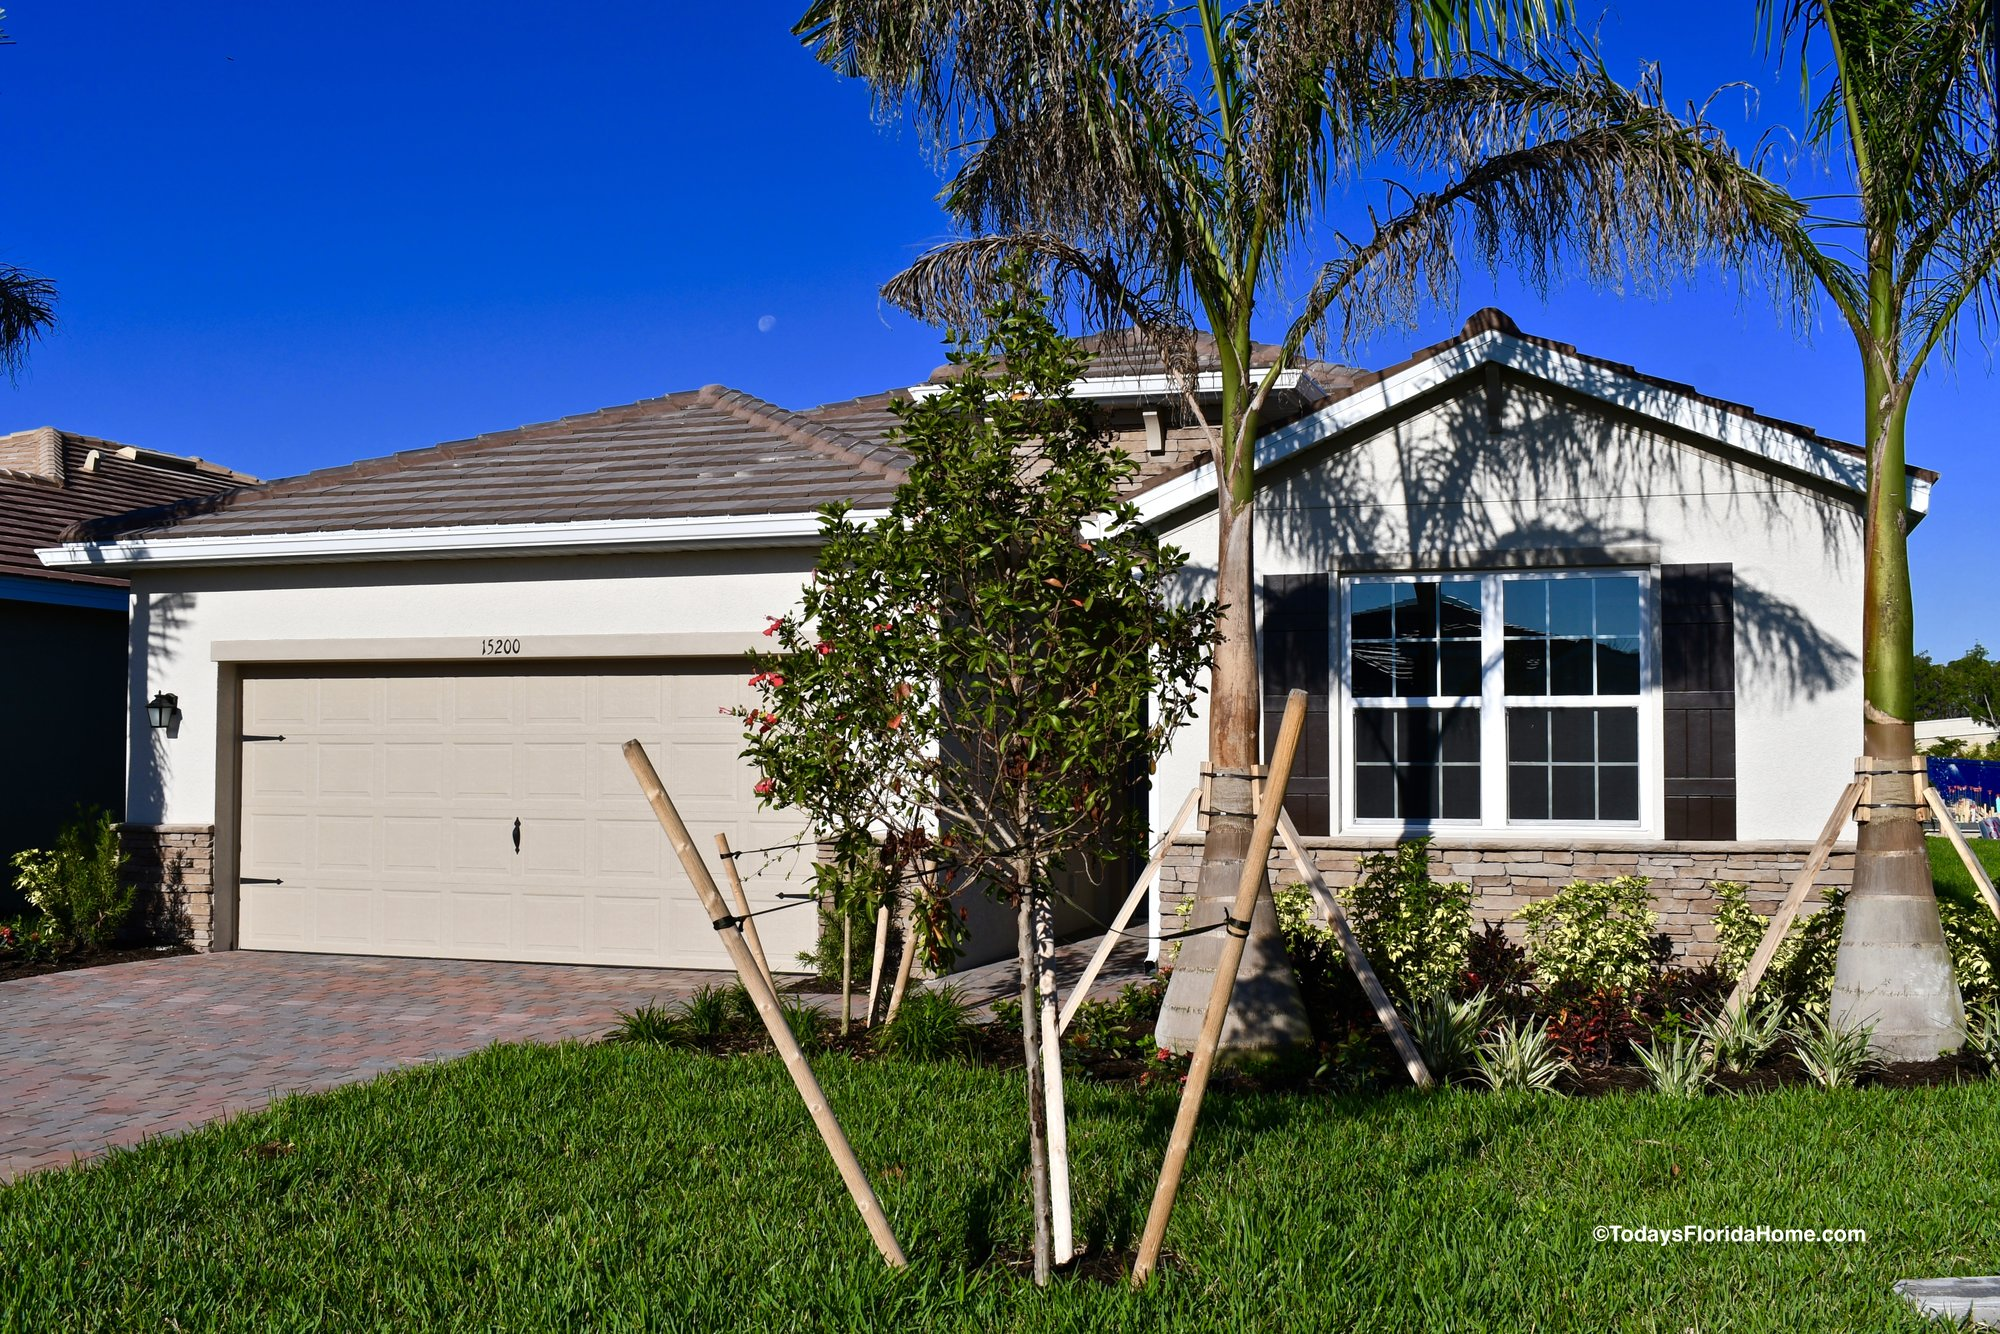 Lindsford Homes for Sale, DR Horton, Fort Myers New Homes for Sale